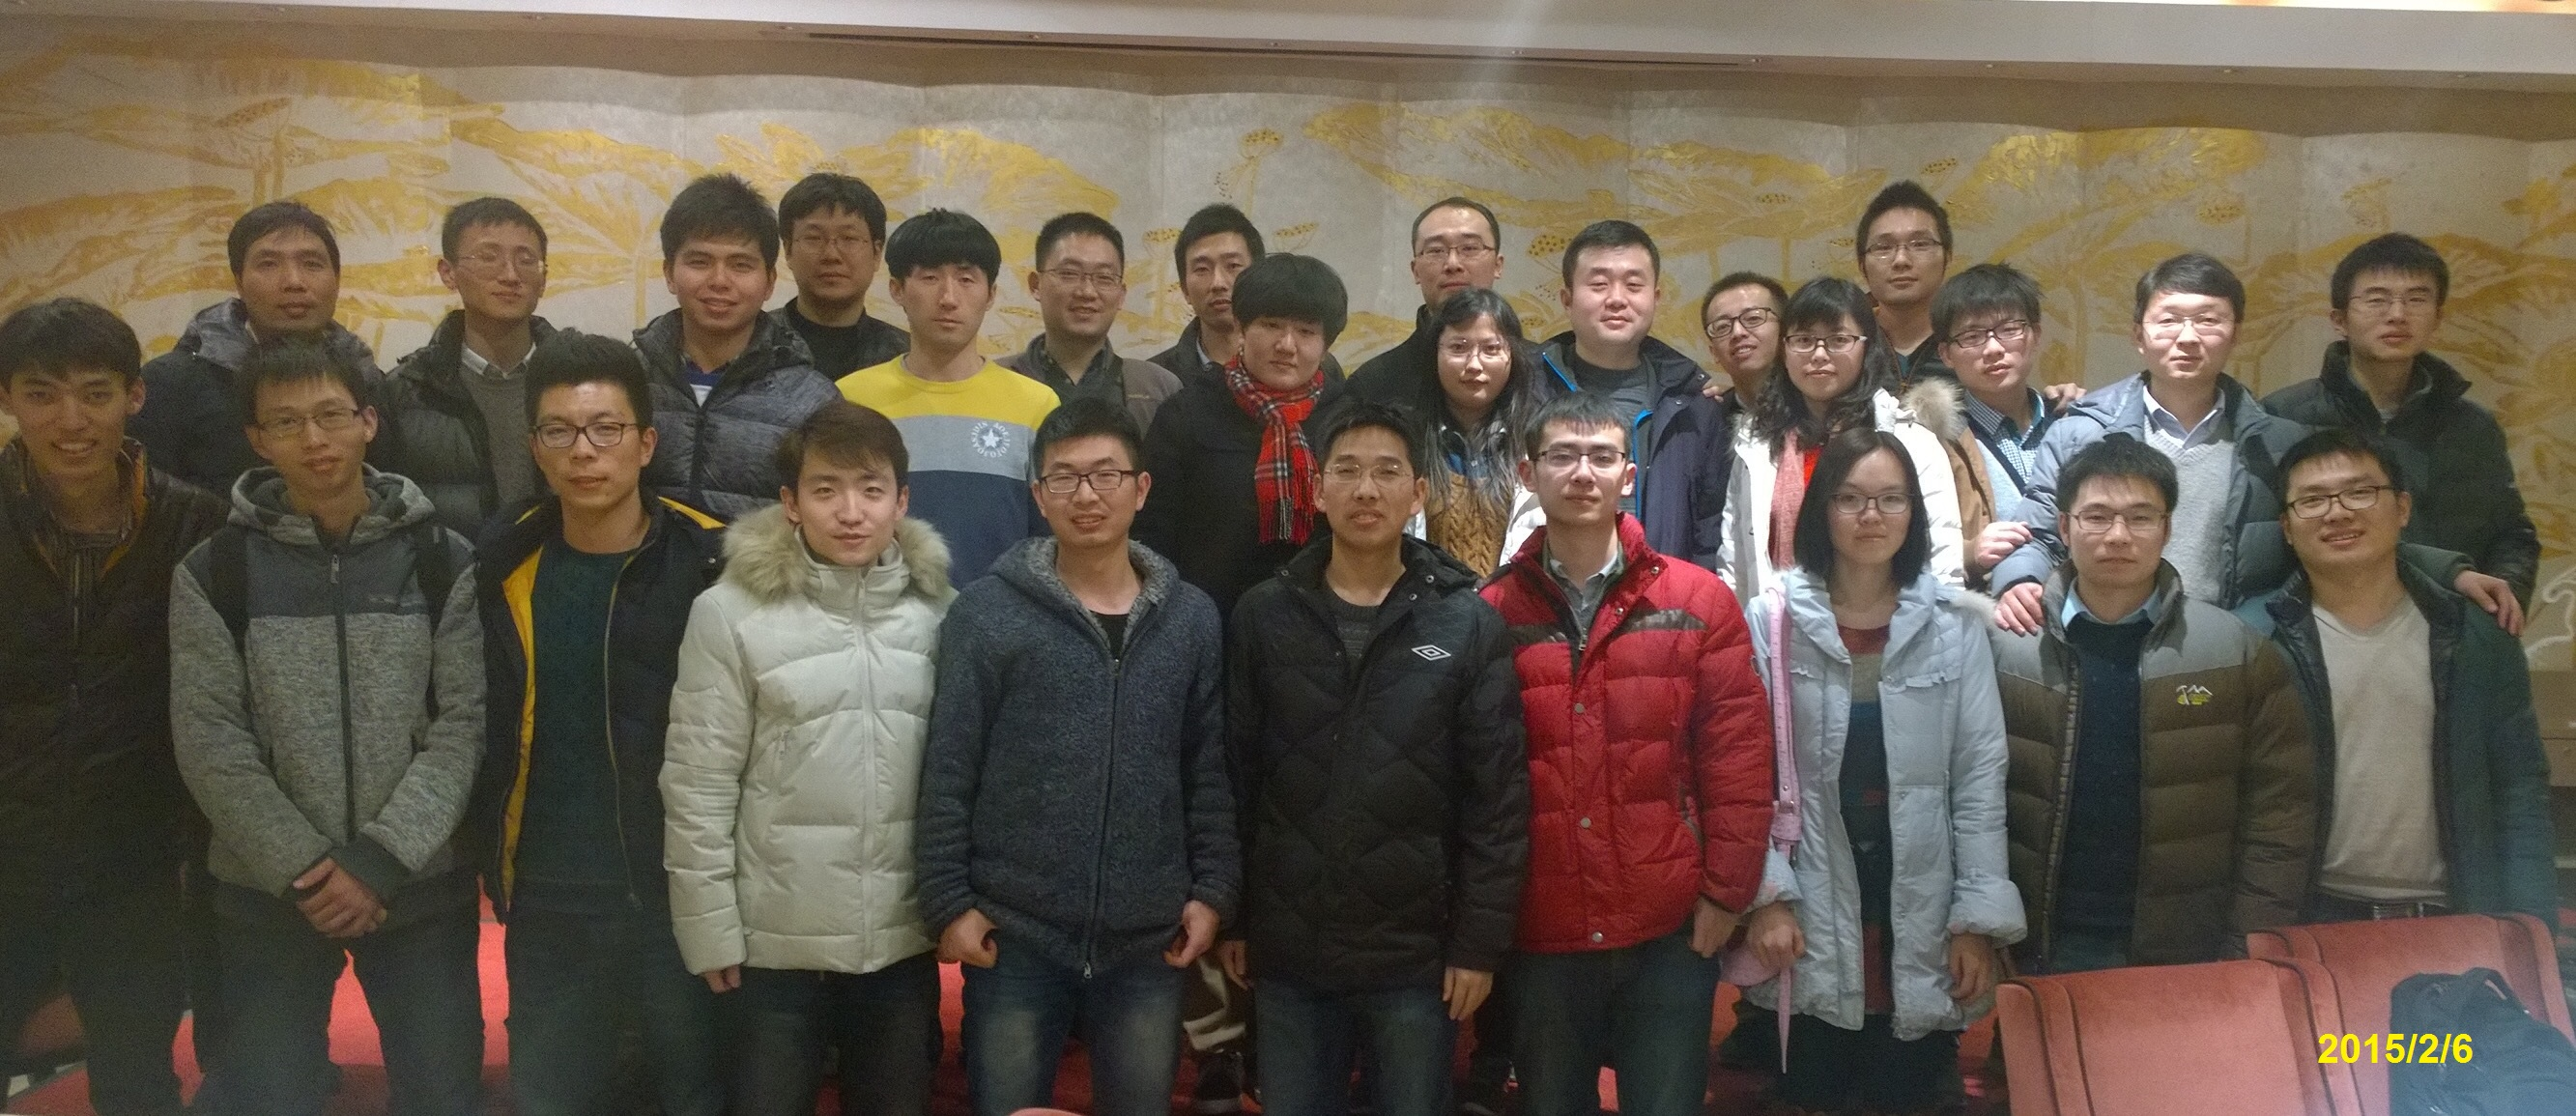 RFIC group members in Shanghai Fortune Hotel